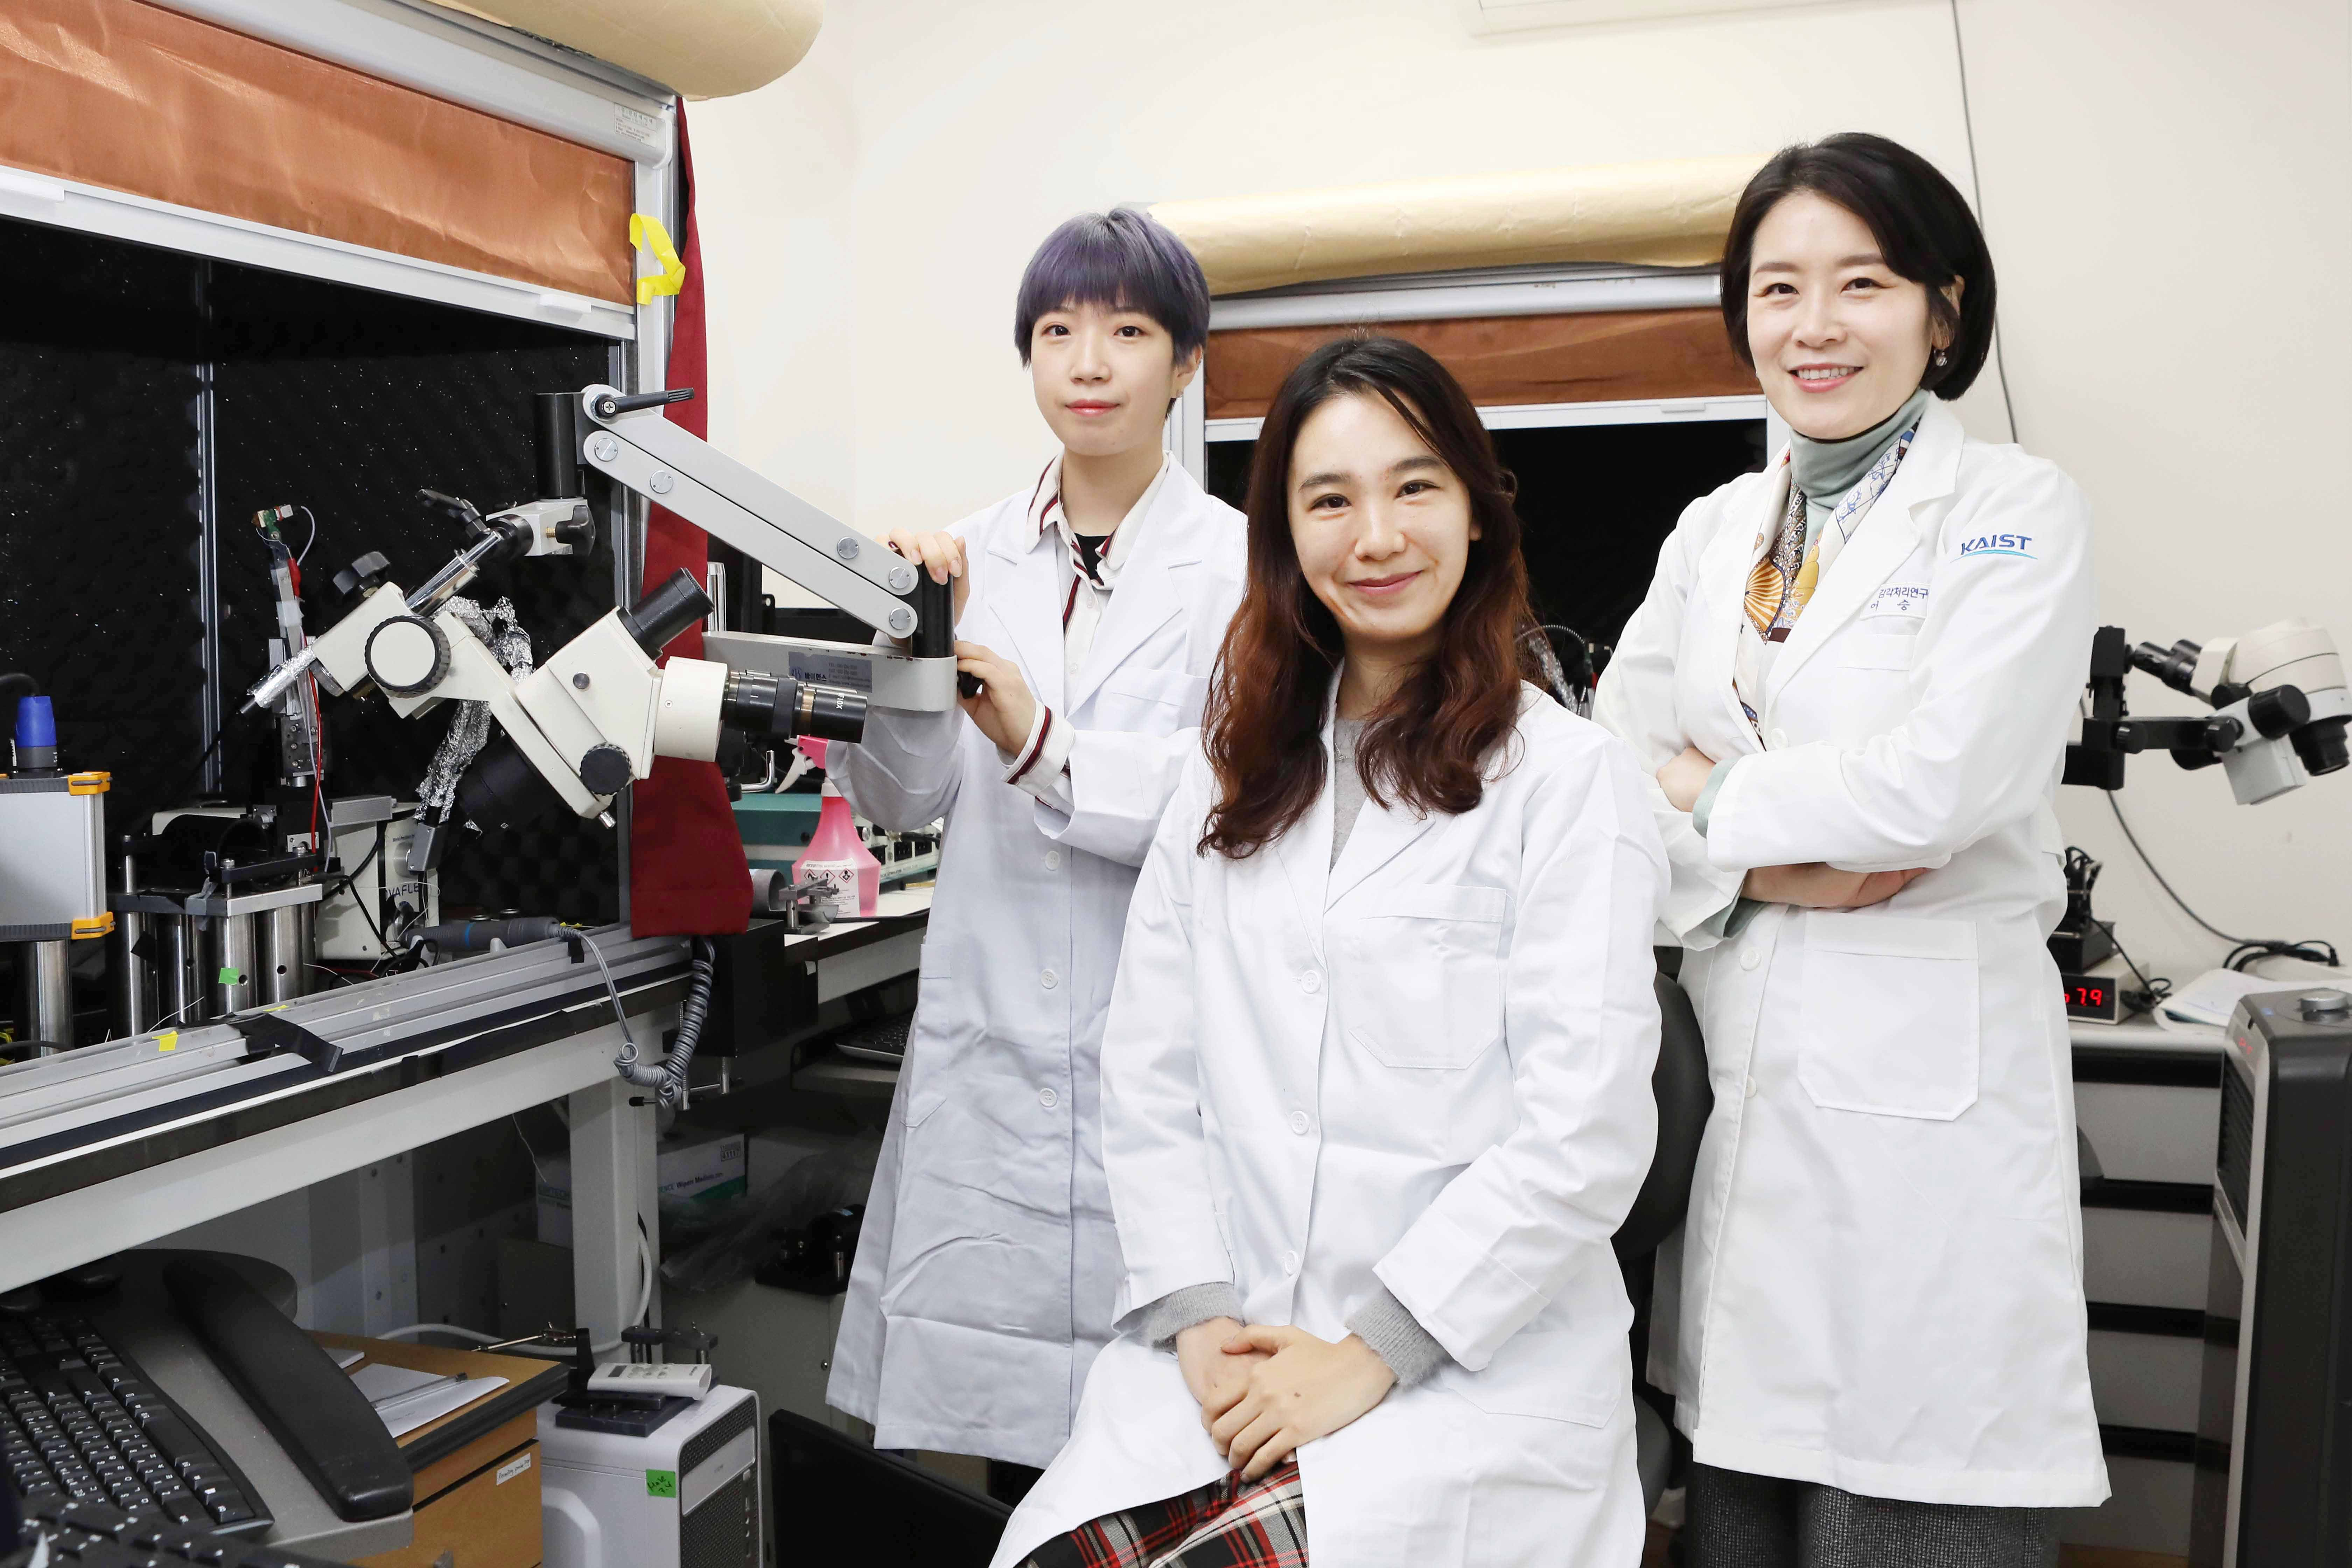 Researcher Yang-Sun Hwang (left), Researcher You-Hyang Song (center), and Professor Seung-Hee Lee (right)